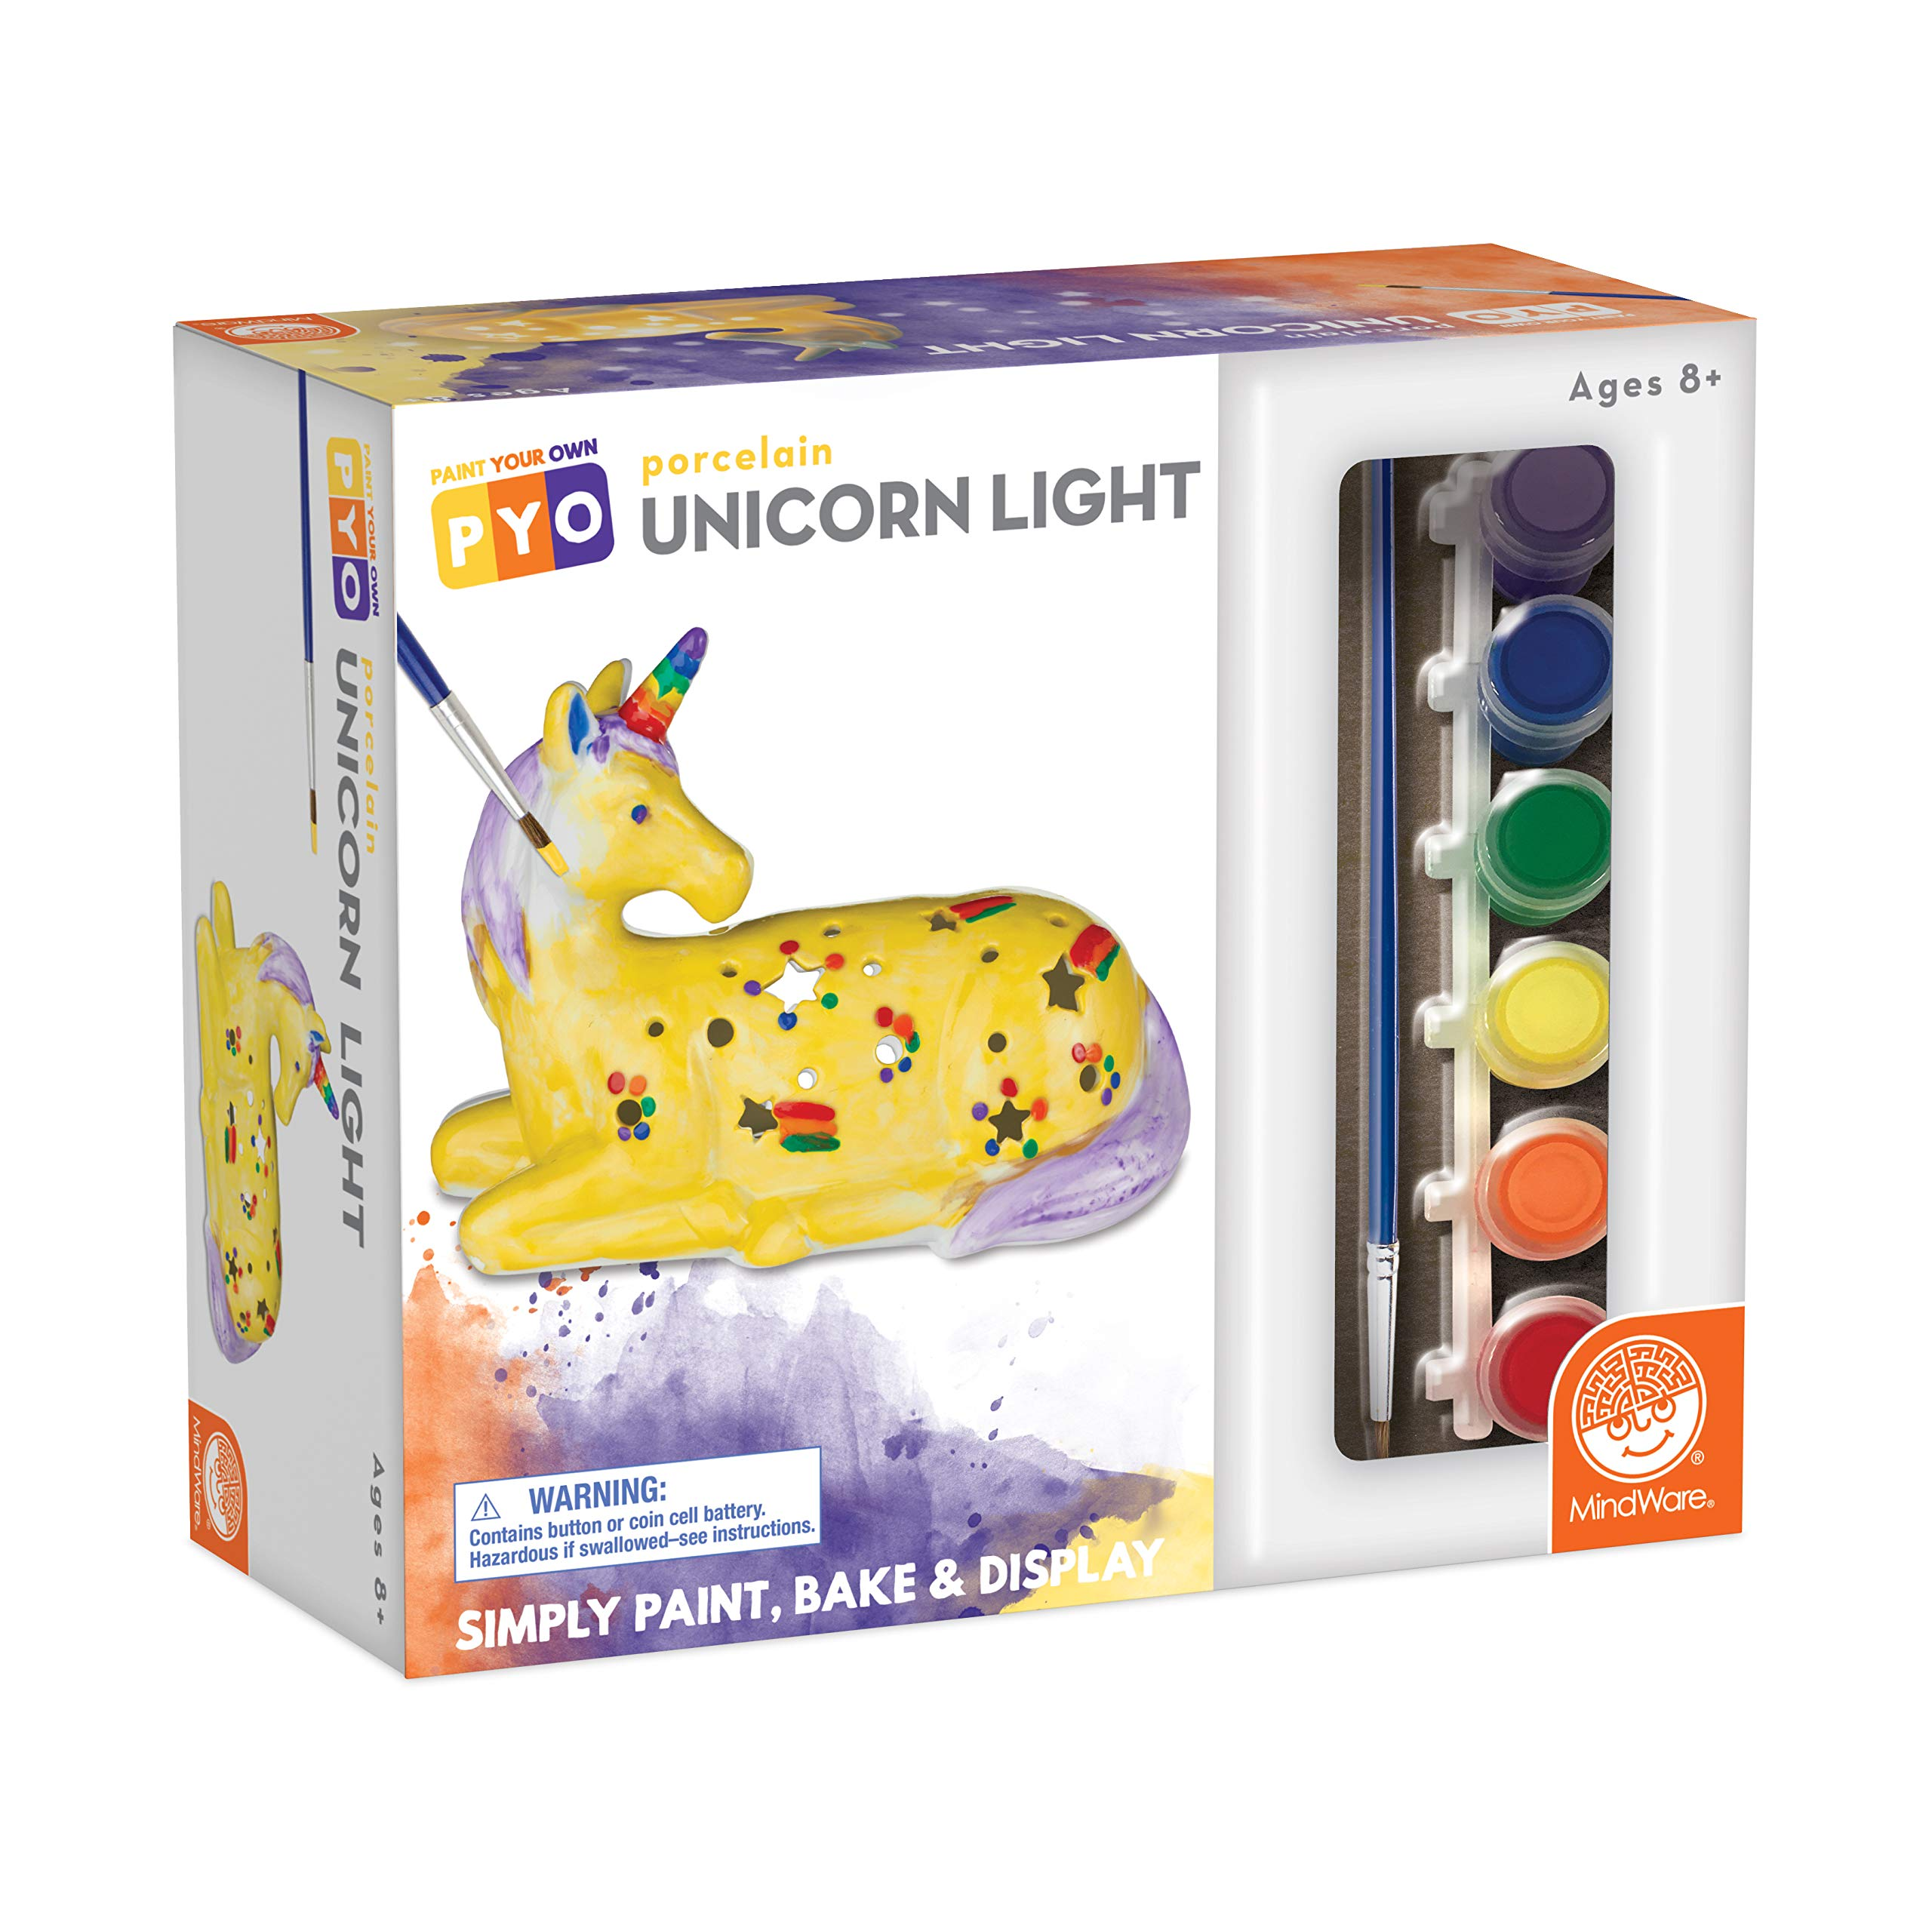 MindWare Paint Your Own Porcelain: Unicorn Light with 2 Tea Lights, 12 Paints & 2 Brushes - Creative paintable Pottery Crafts & Gift Kits for Kids